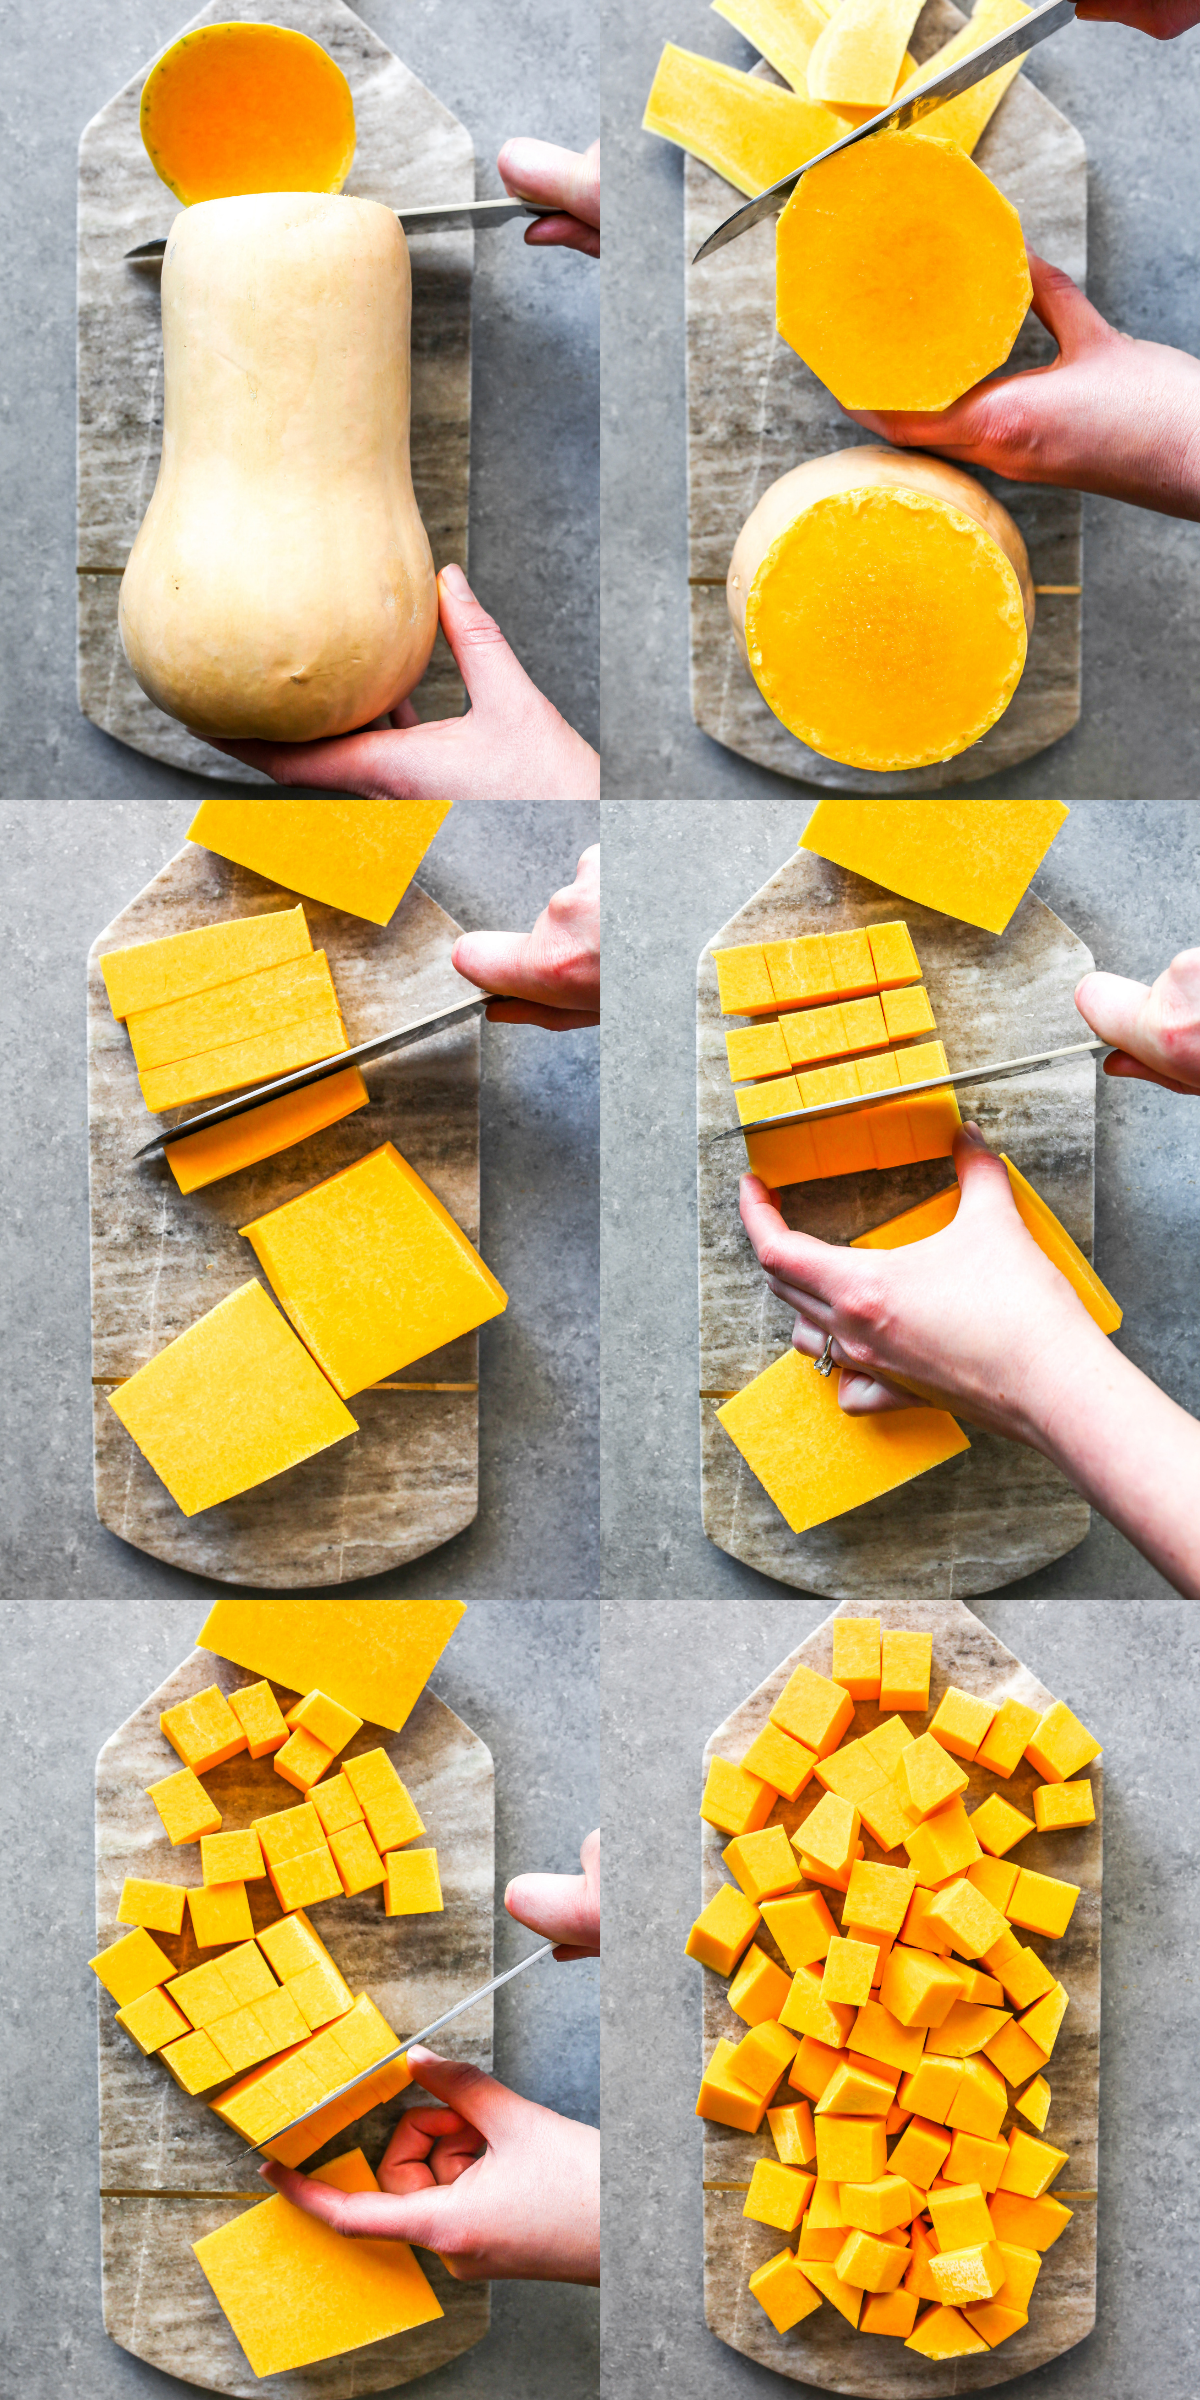 Step-by-step showing how to peel and slice a butternut squash